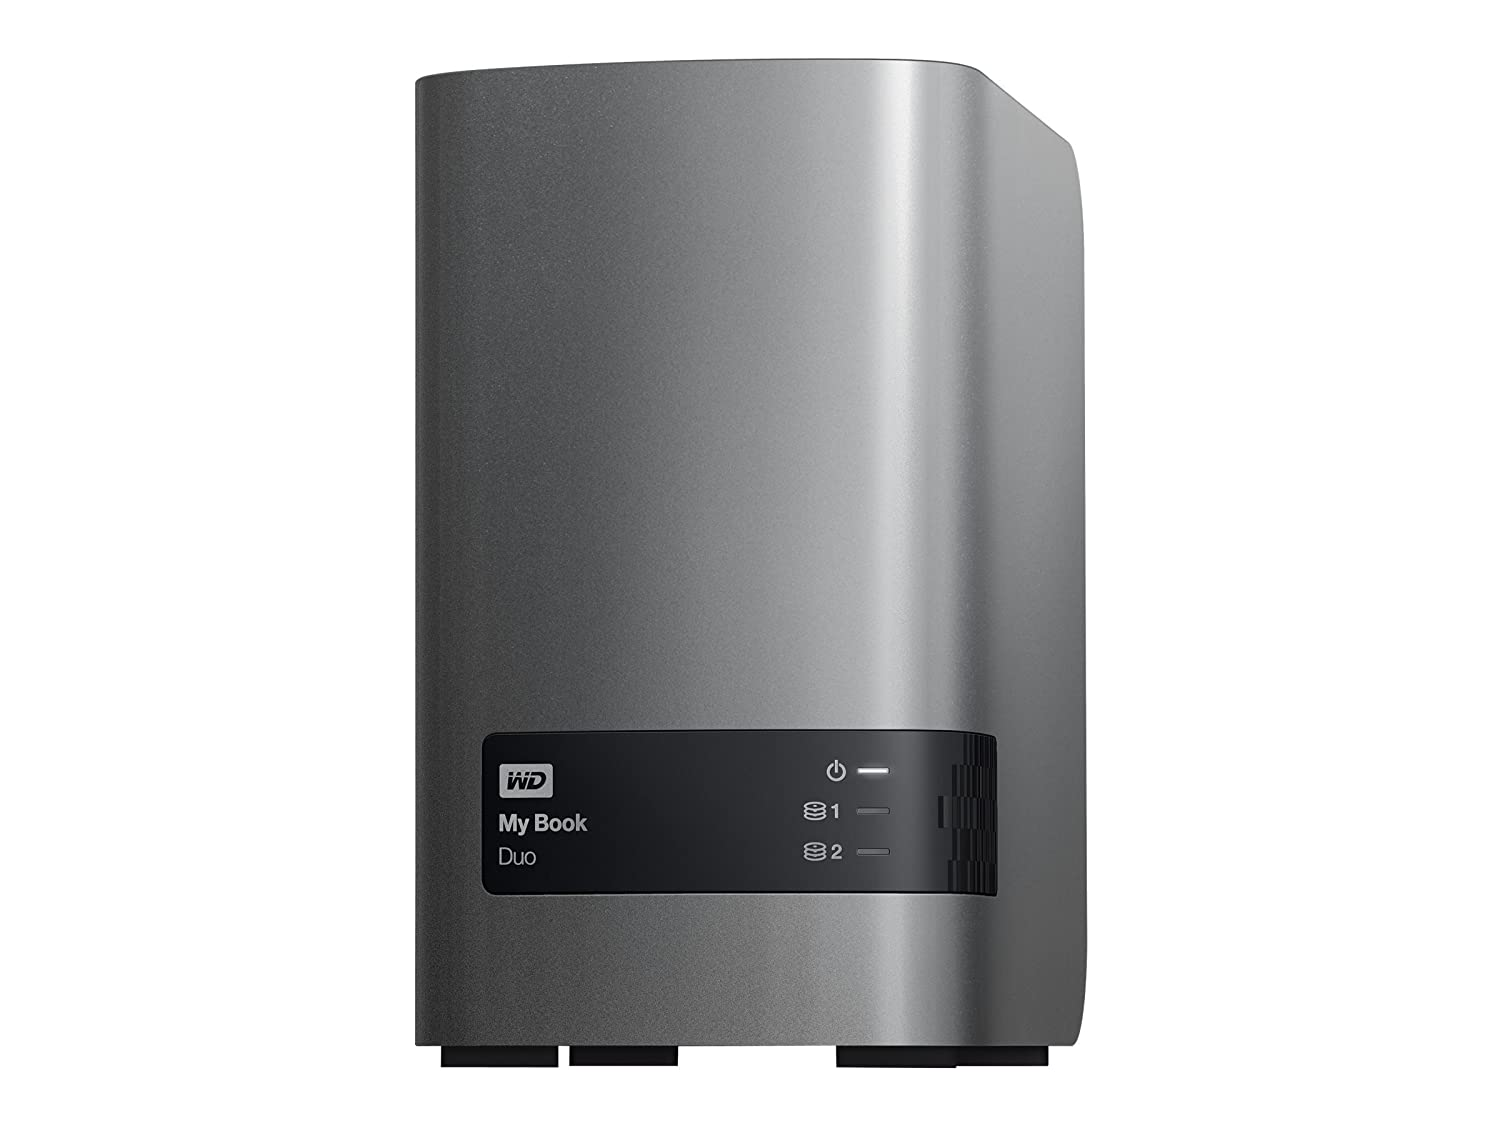 WD 4TB My Book External Hard Drive Black Friday Deal